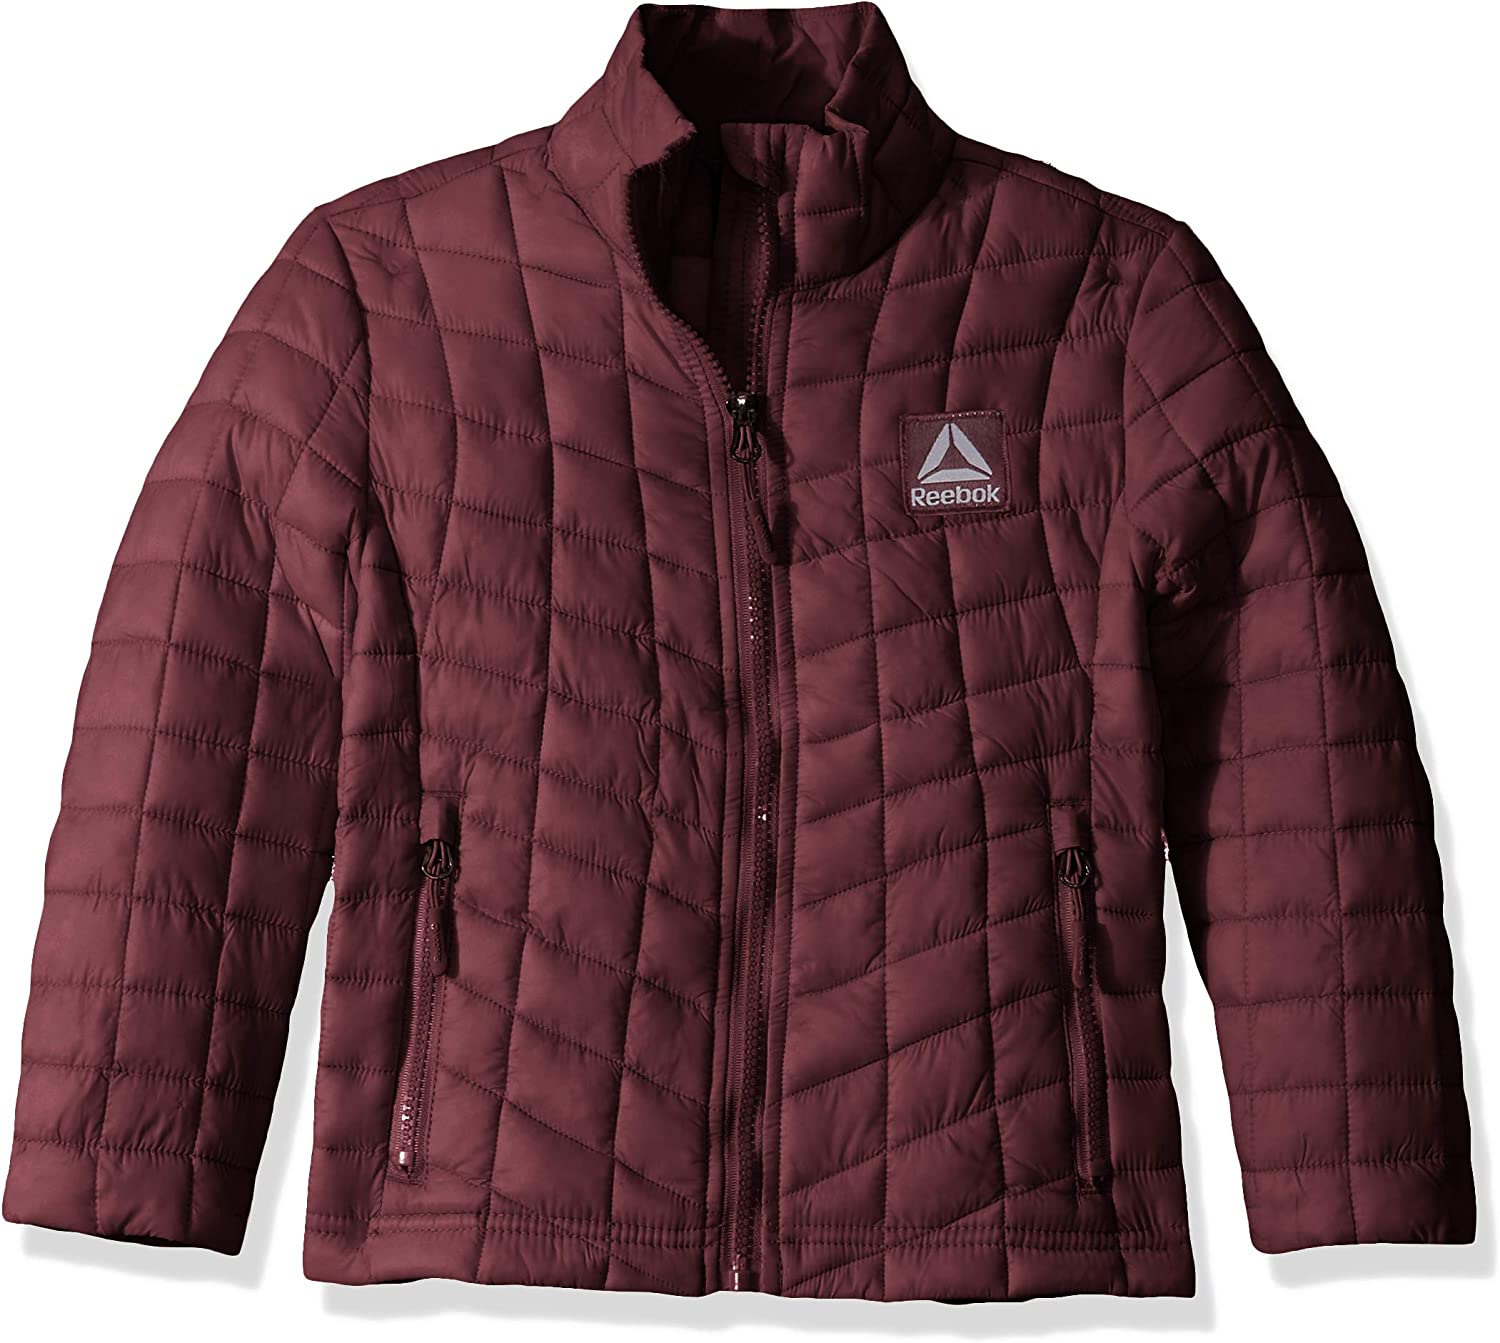 Reebok Girls' Active Outerwear Spasm price Jacket Free shipping New Available Styles More